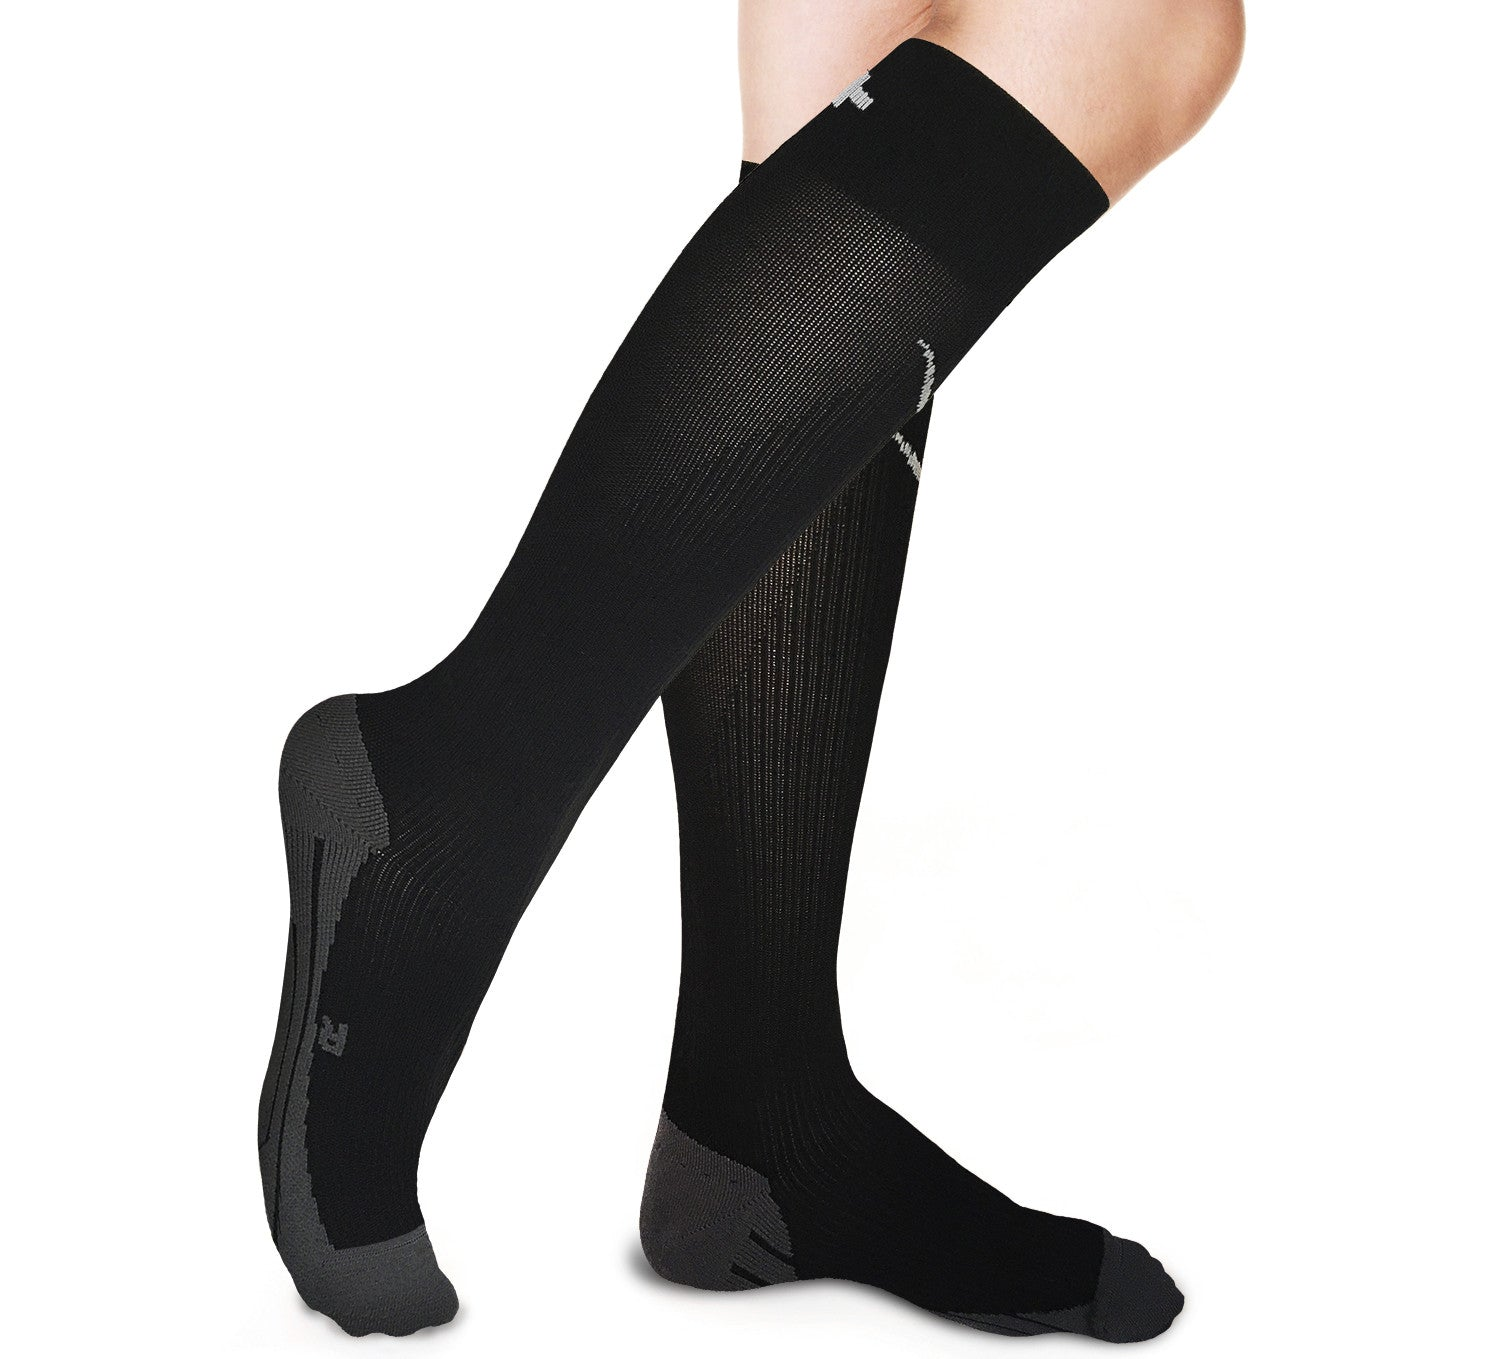 Graduated Compression Socks  - Running, Maternity Pregnancy, Shin Splint, Swollen Legs, Air Flight